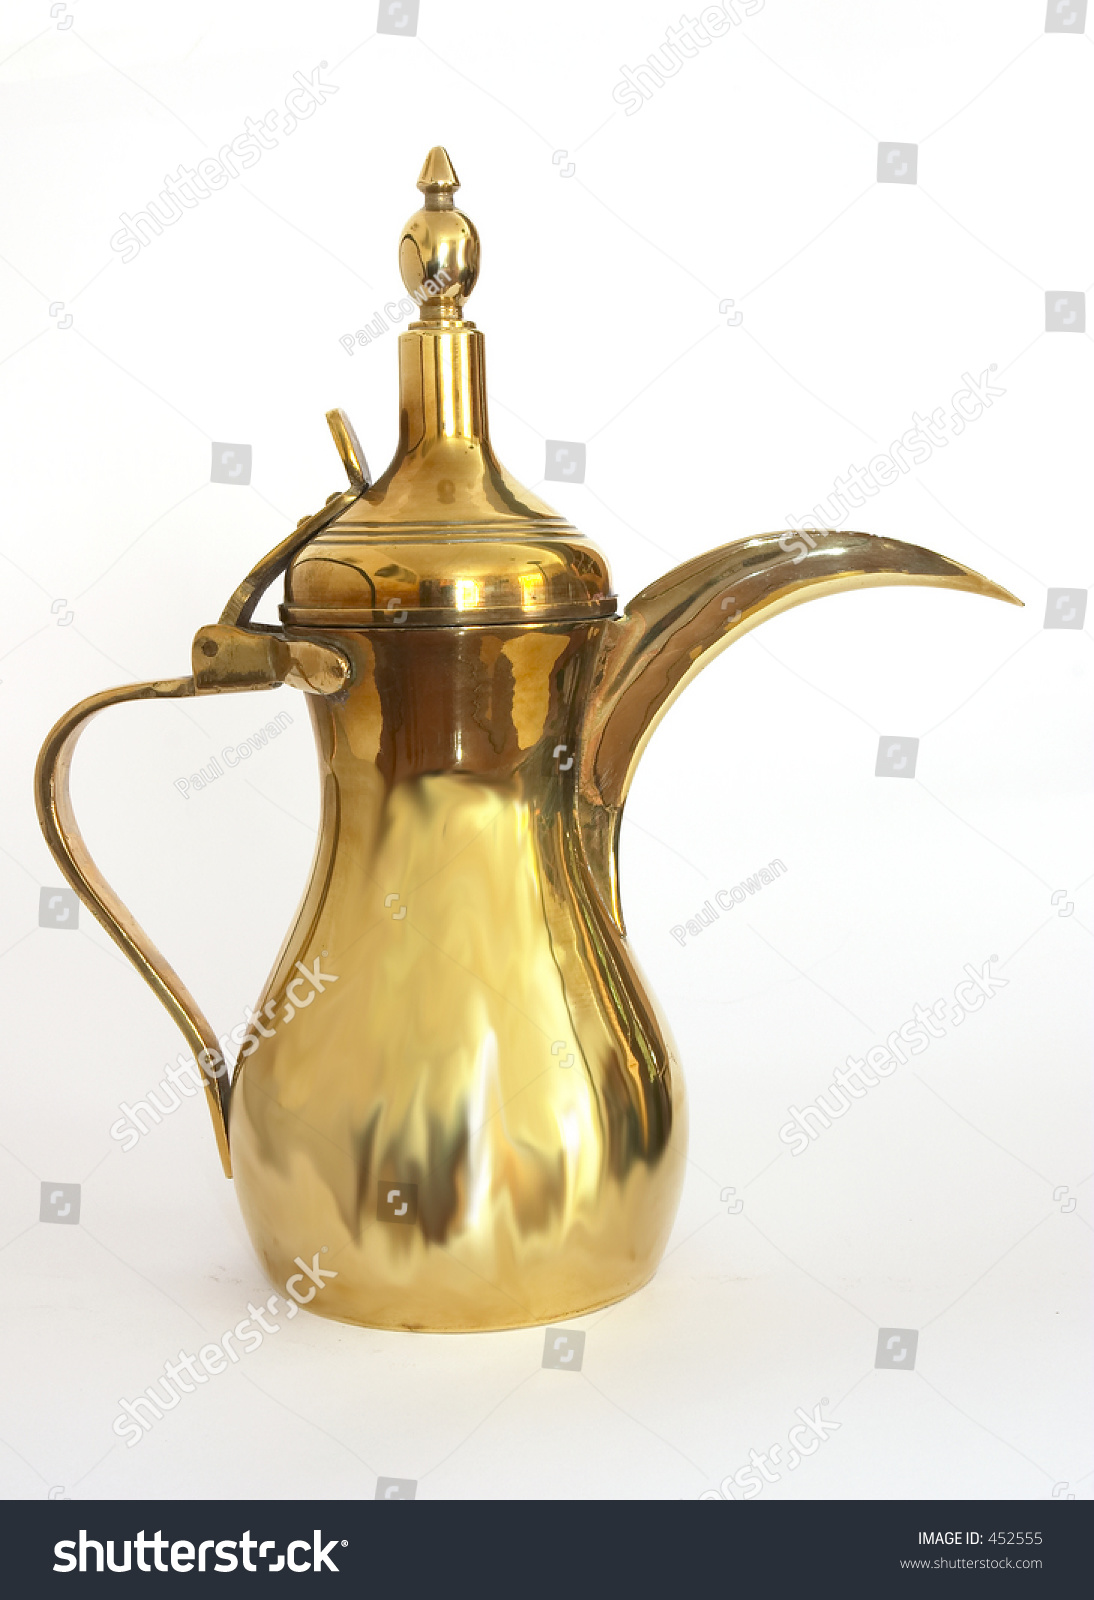 Arab coffee pot dallah symbol welcome stock photo 452555 arab coffee pot or dallah a symbol of welcome as coffee is always served biocorpaavc Gallery